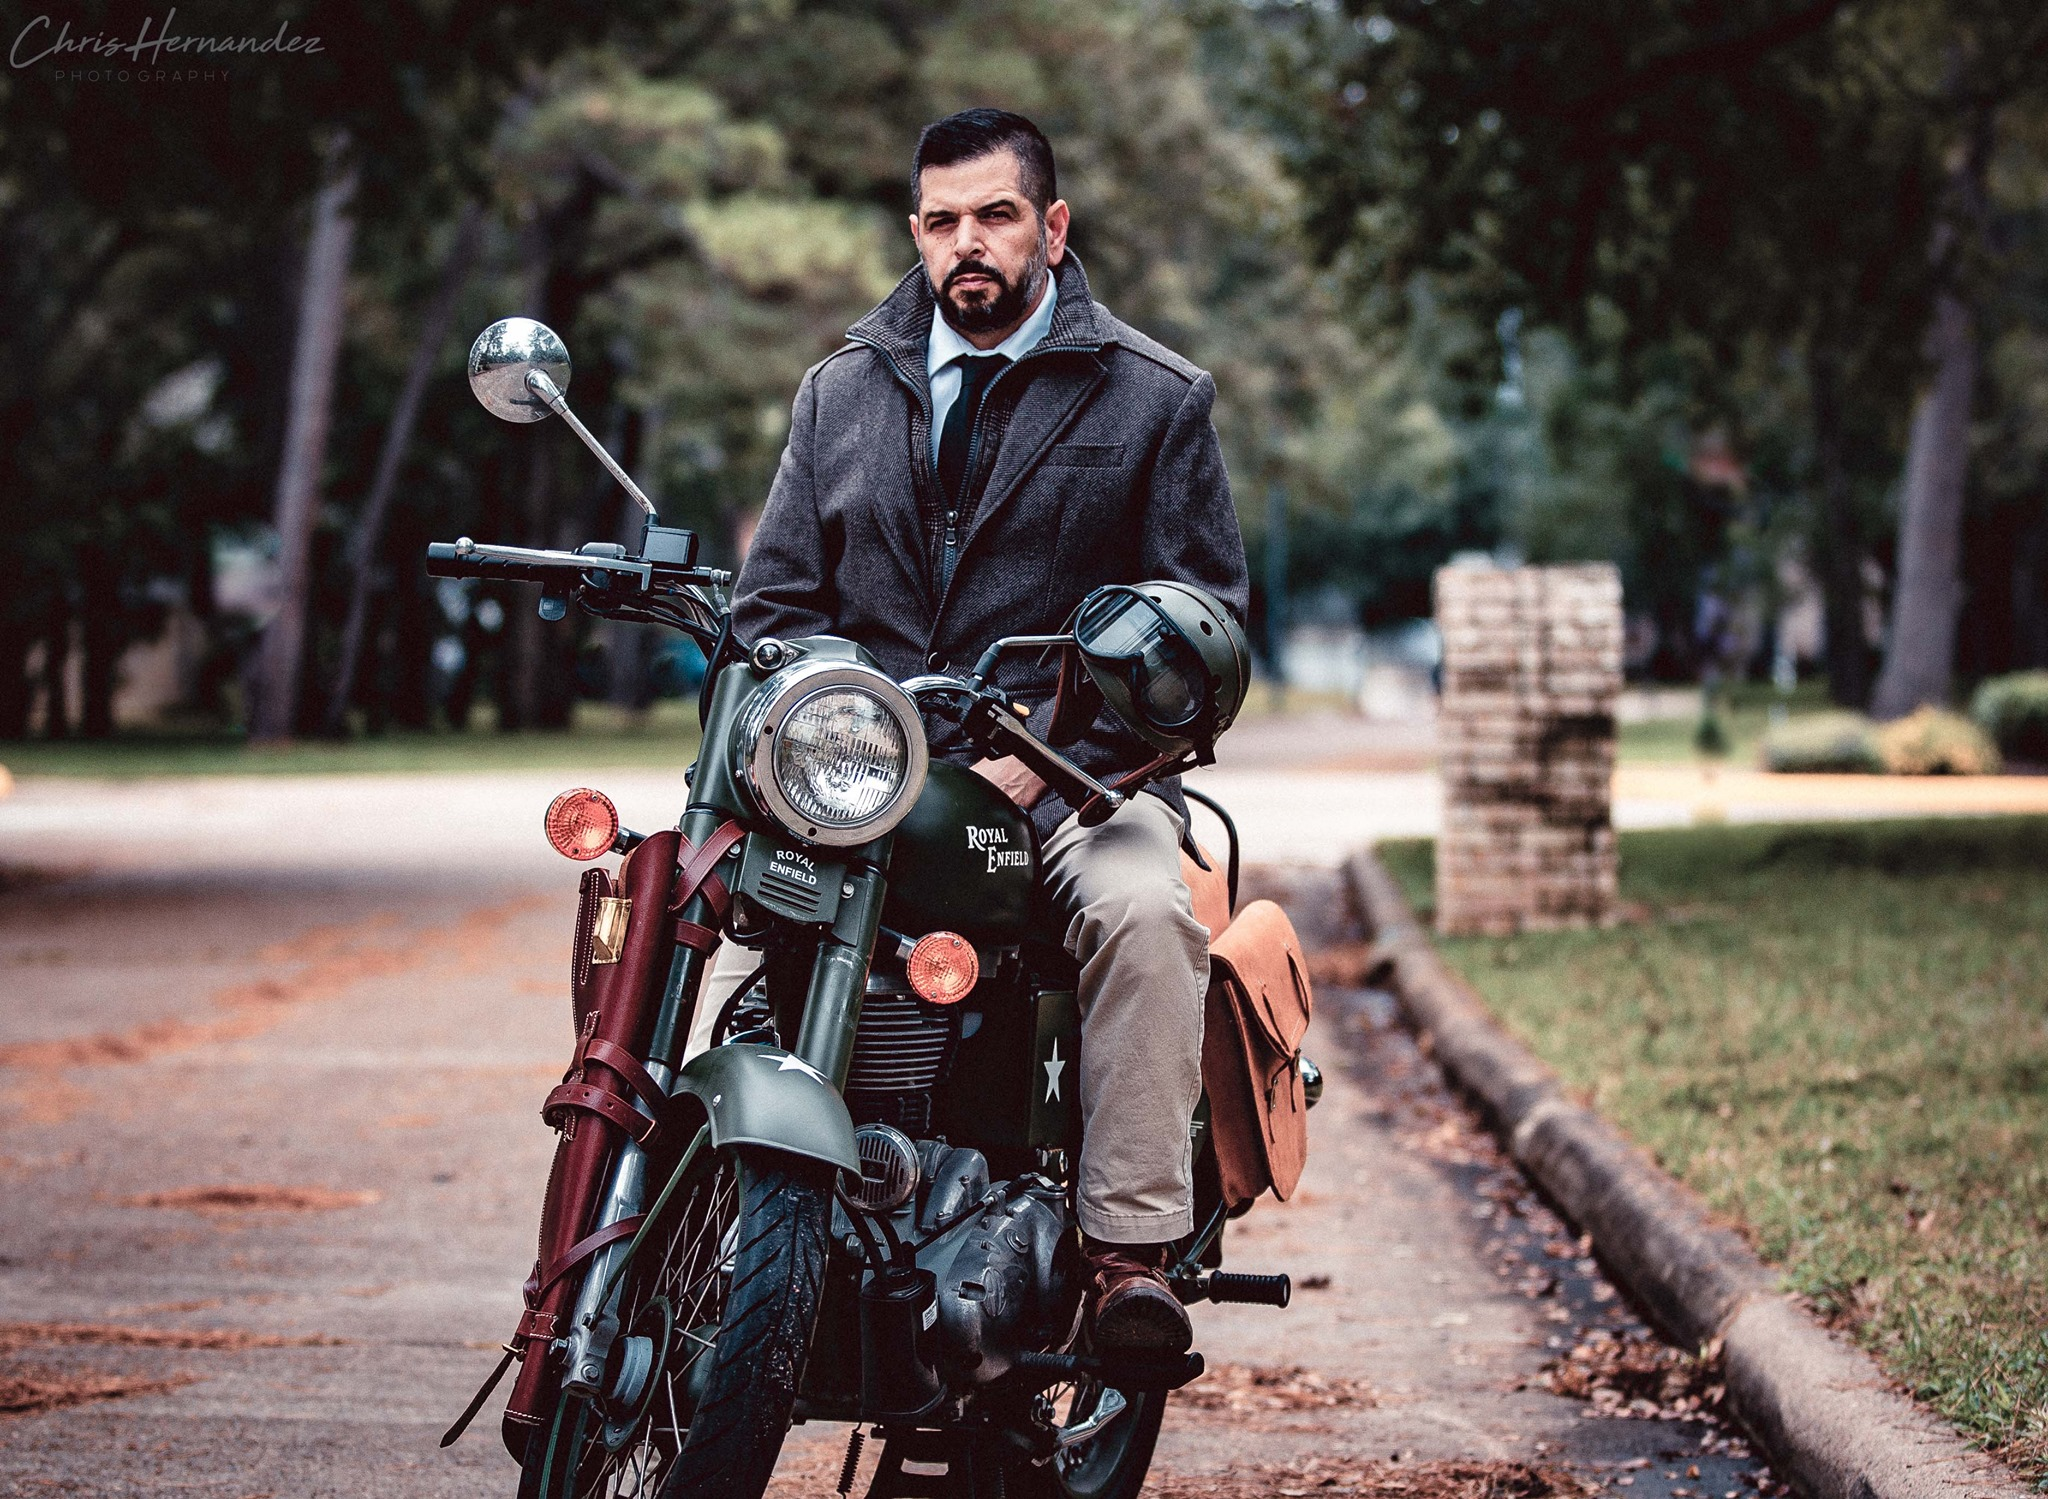 Chris Hernandez on his Royal Enfield motorcycle